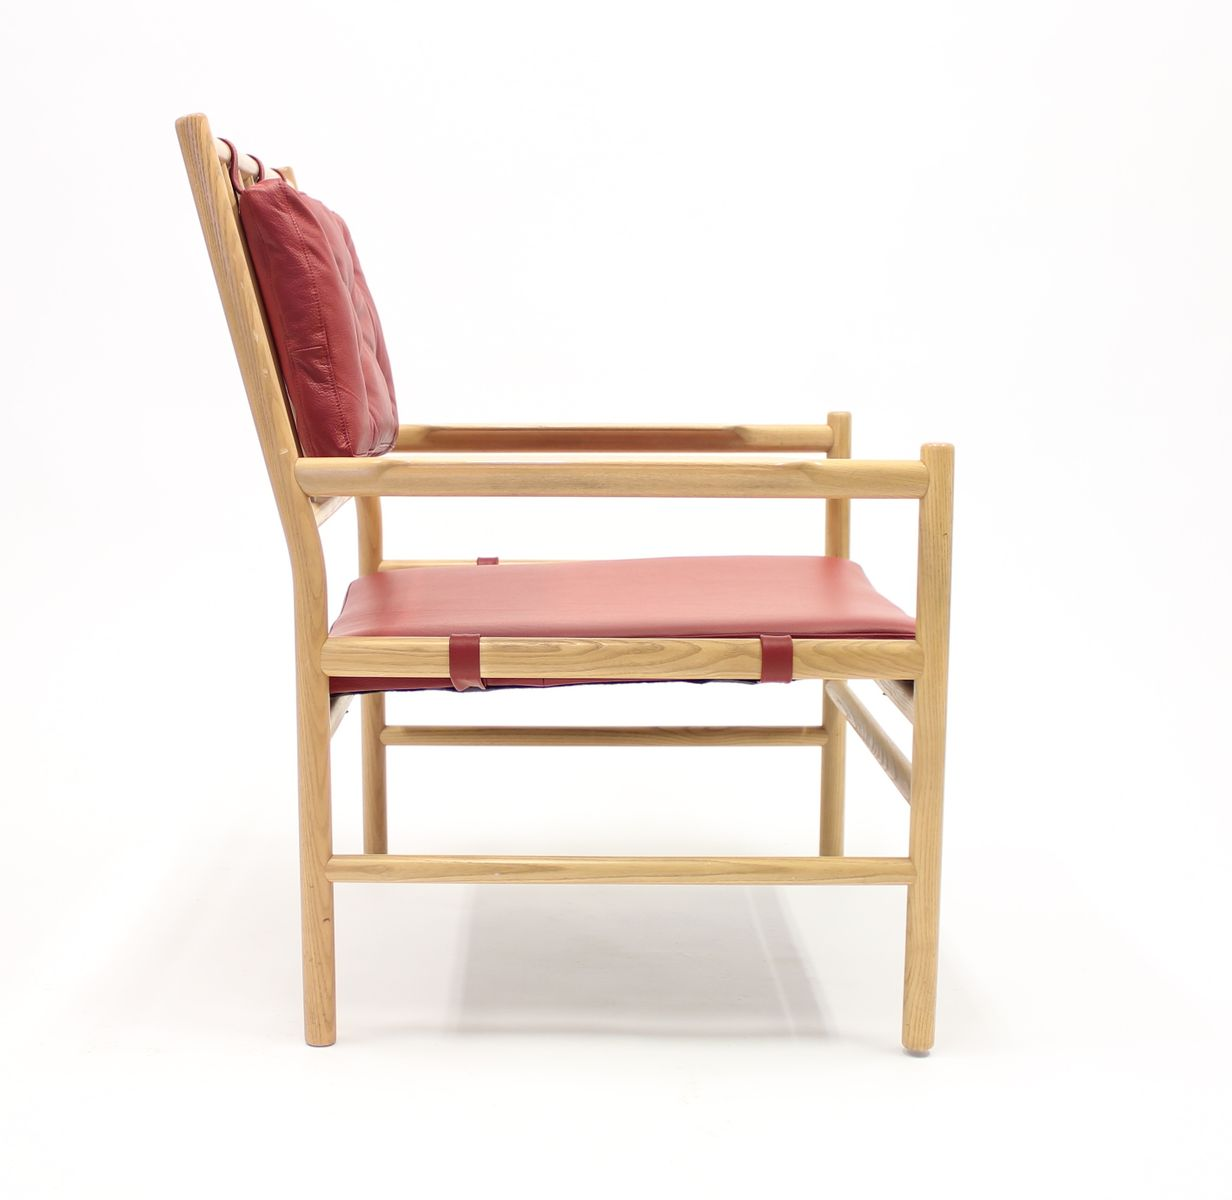 Scandinavian safari style peter easy chair in oak leather by arne norell 1970s for sale at pamono - Scandinavian chair ...